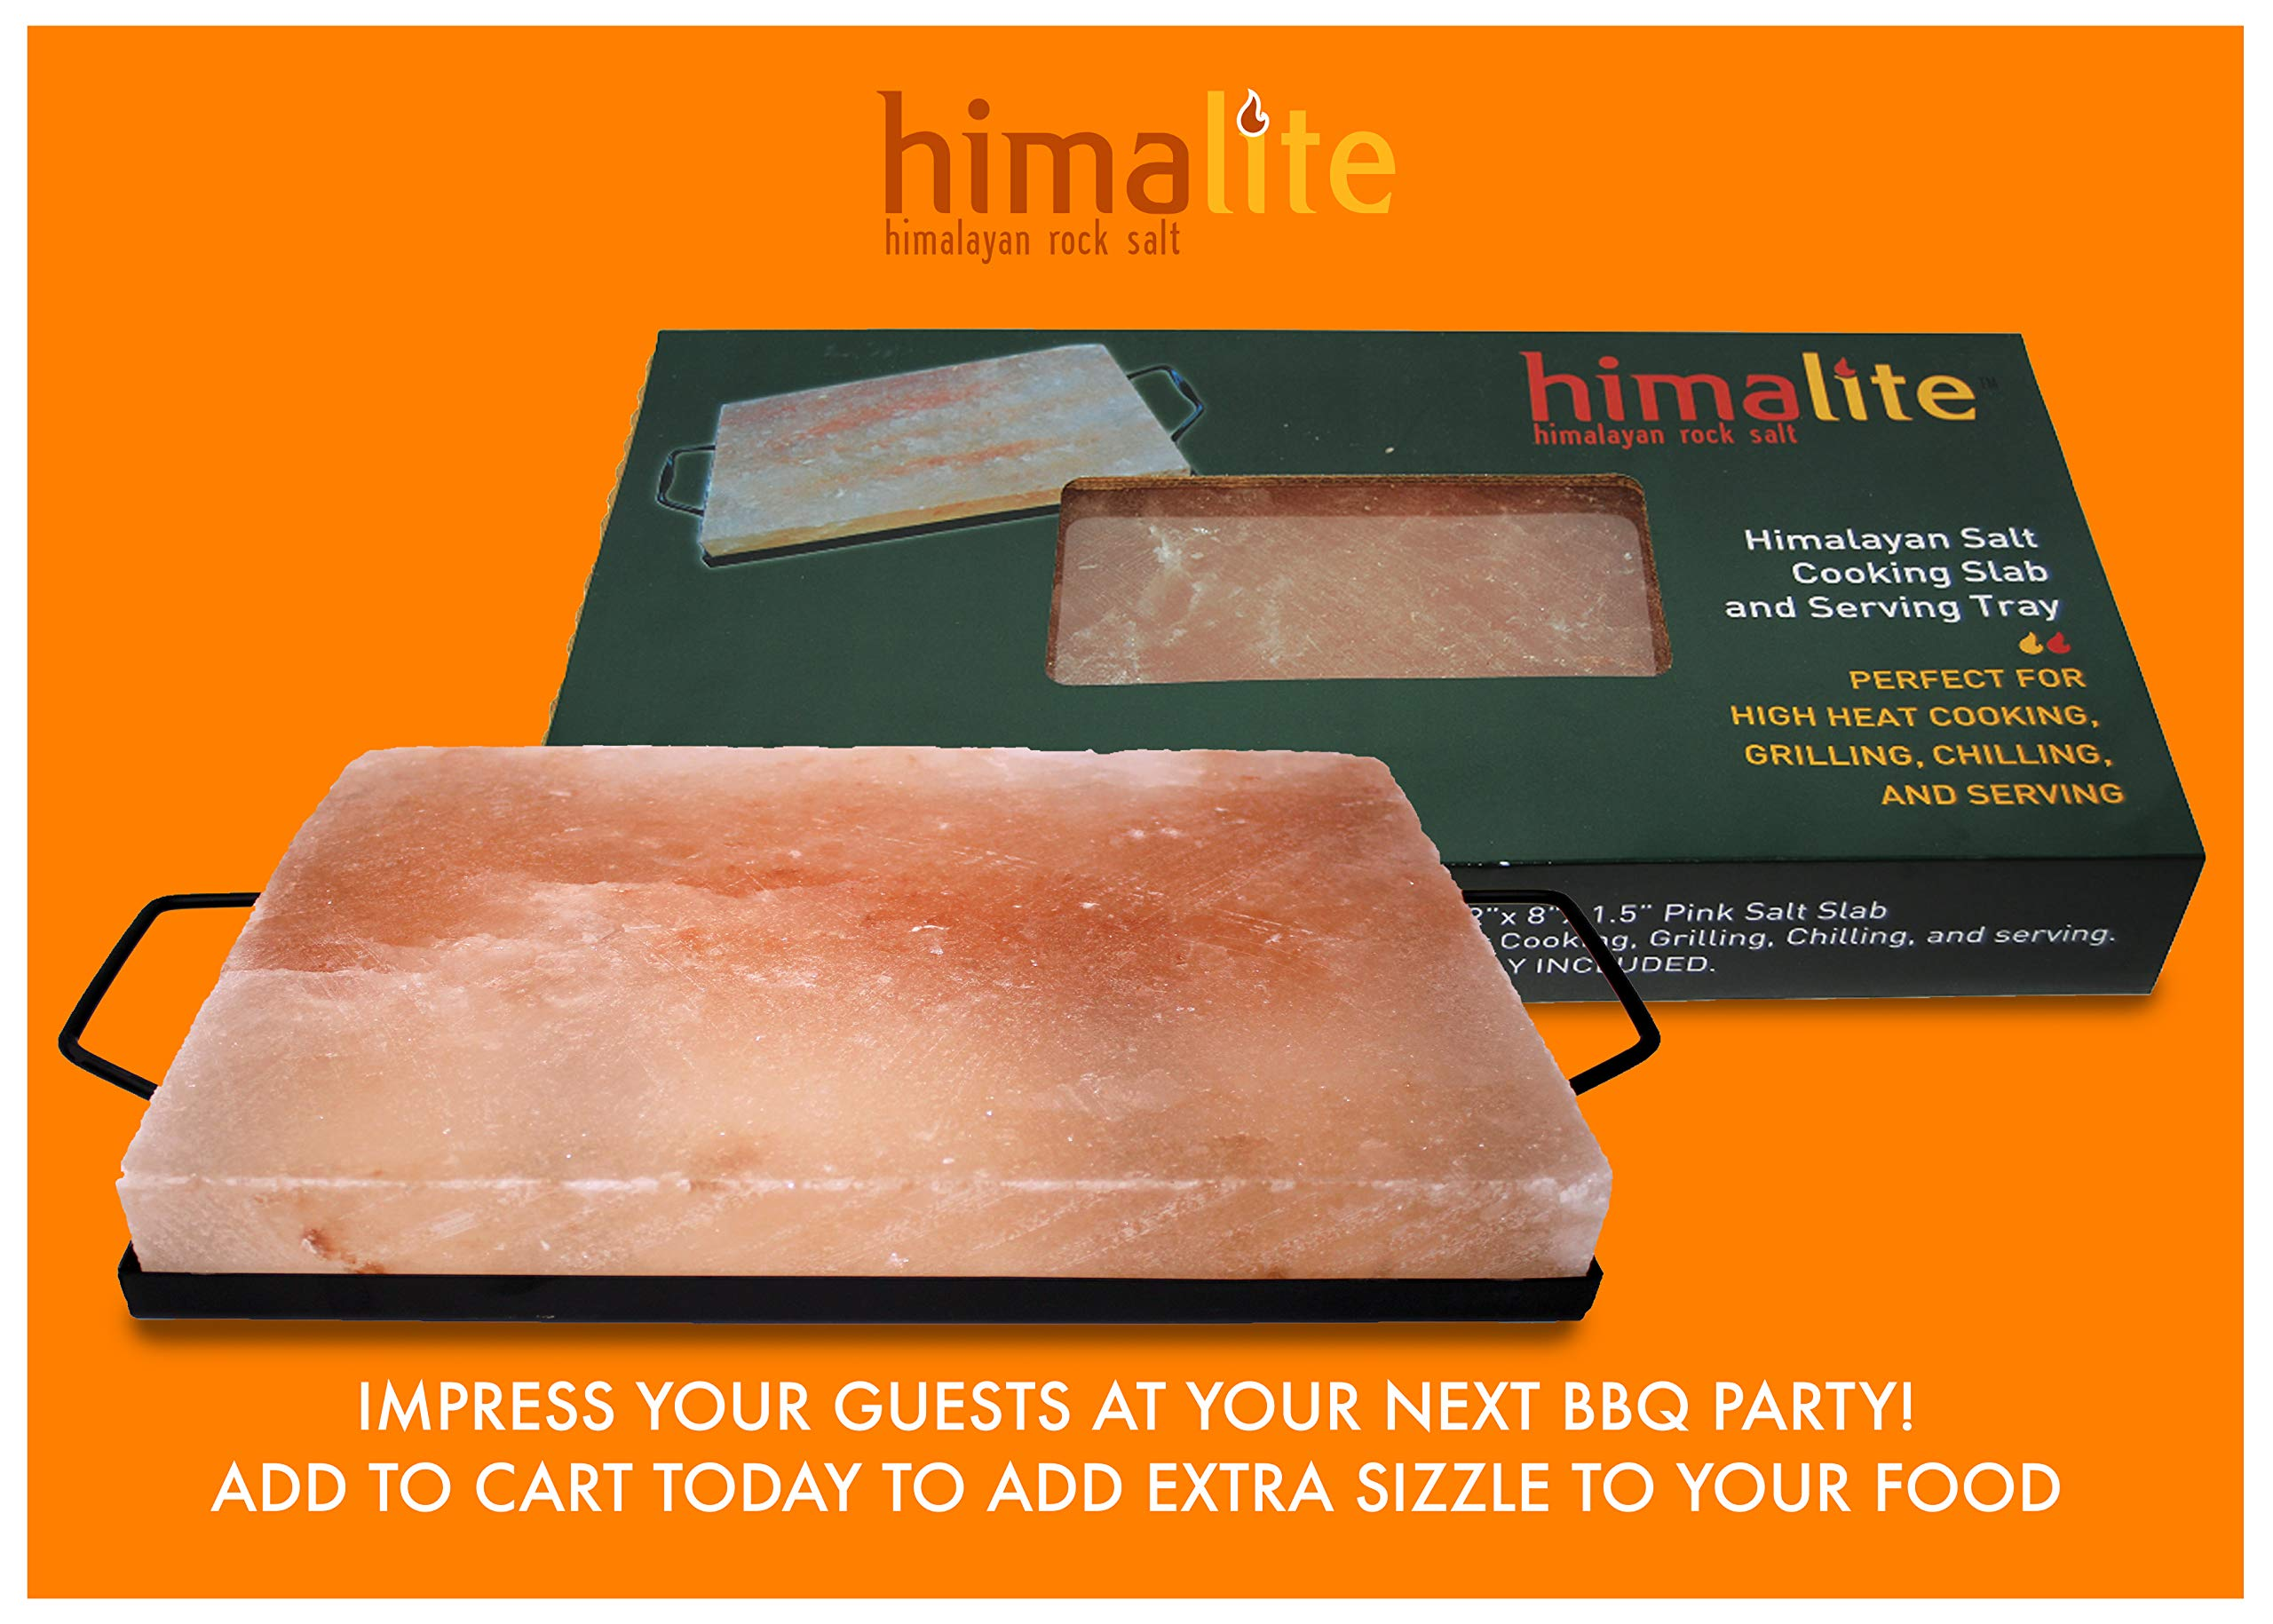 Himalite Himalayan Pink Salt Cooking Block and Tray Set 12'' x 8'' x 1.5'' for Cooking, Grilling, Cutting and Serving with Metal Tray Himalayan Rock Salt by Himalite (Image #2)